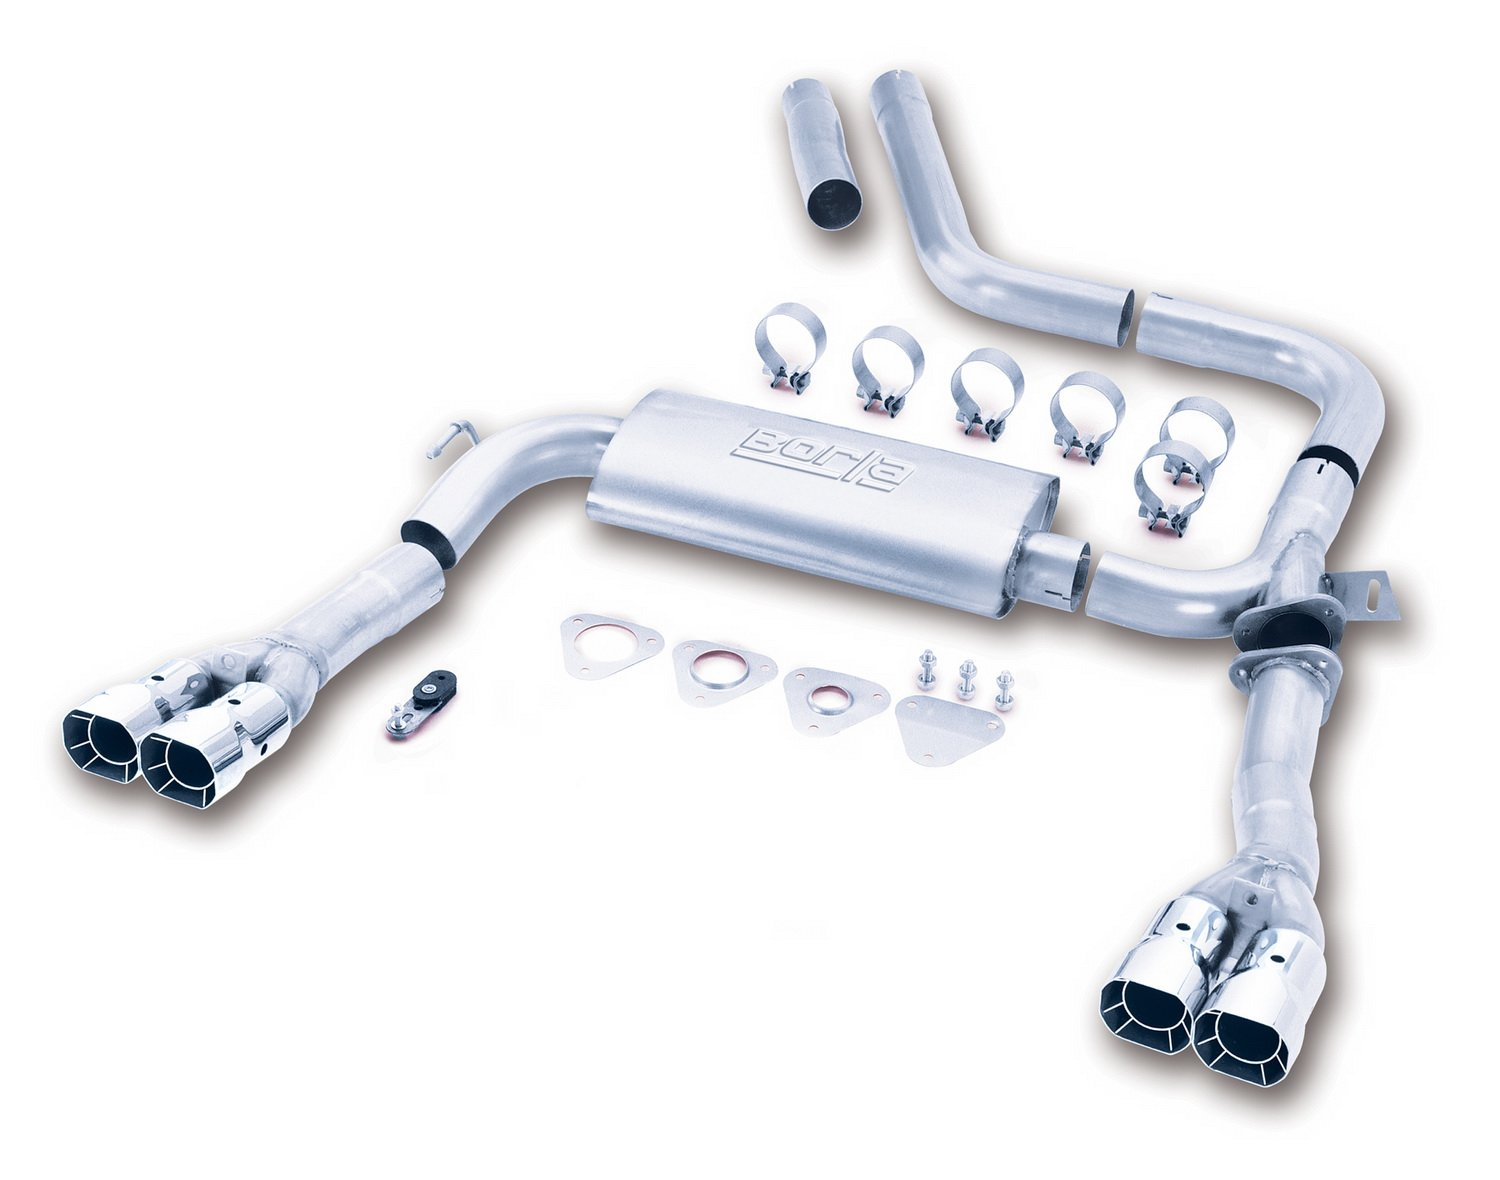 Amazon Borla 14780 3 Adjustable Cat Back Exhaust System Automotive